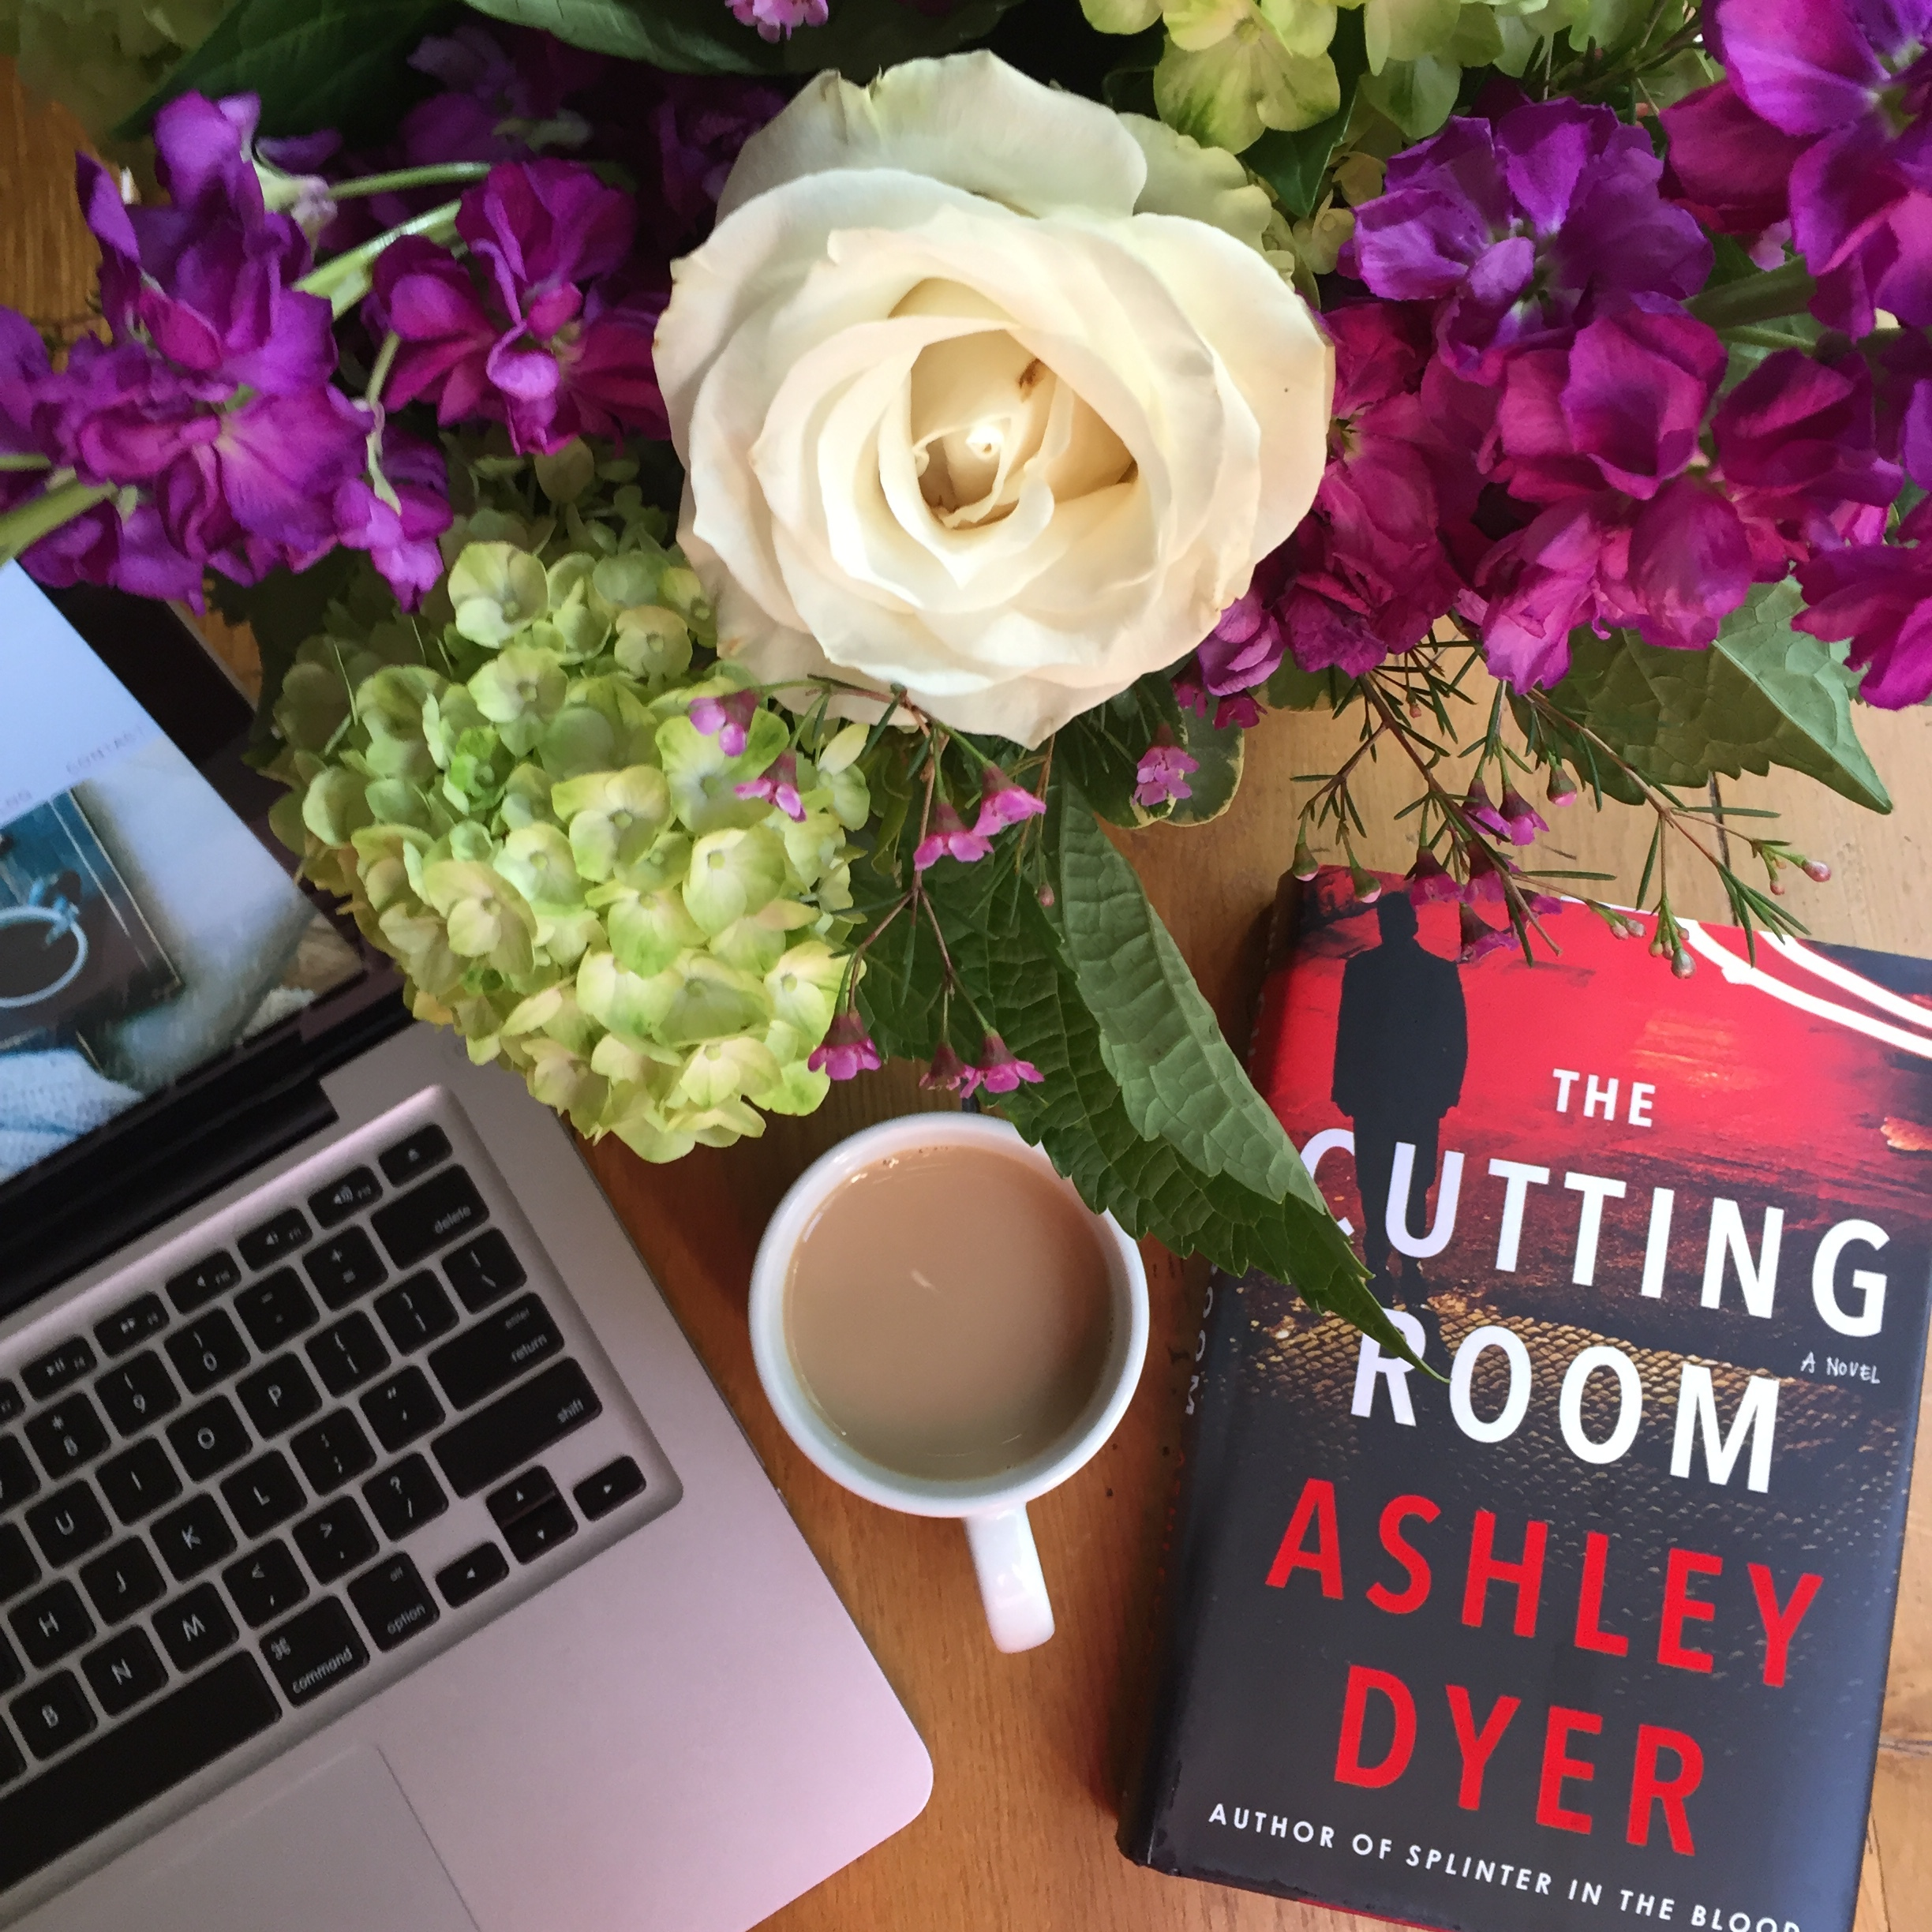 *  Book Review THE CUTTING ROOM by Ashley Dyer  *